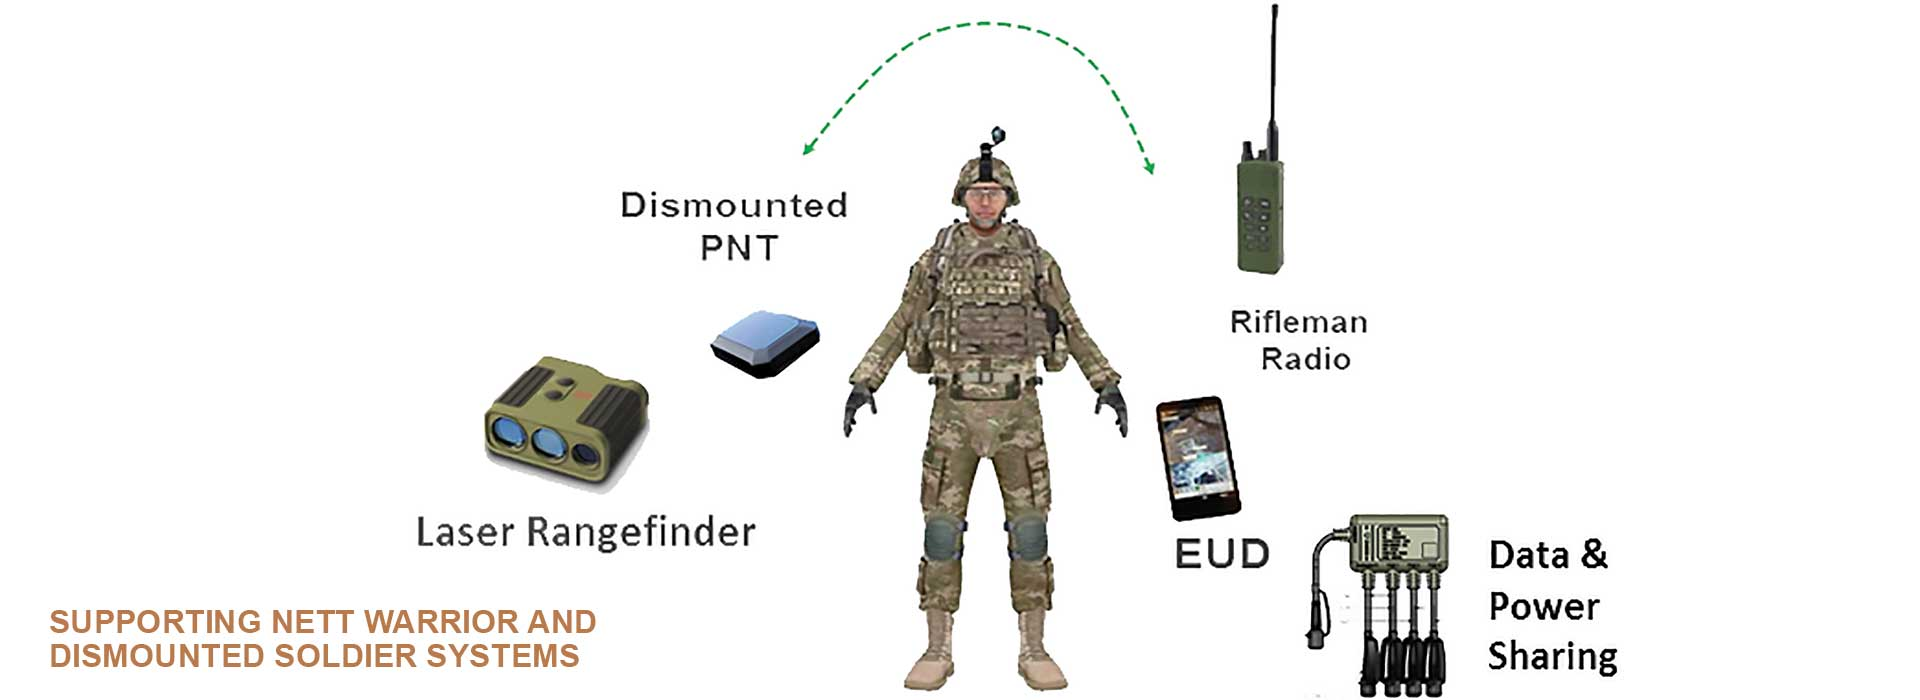 Assured-Positioning, Navigation and Timing (A-PNT) — Dismounted